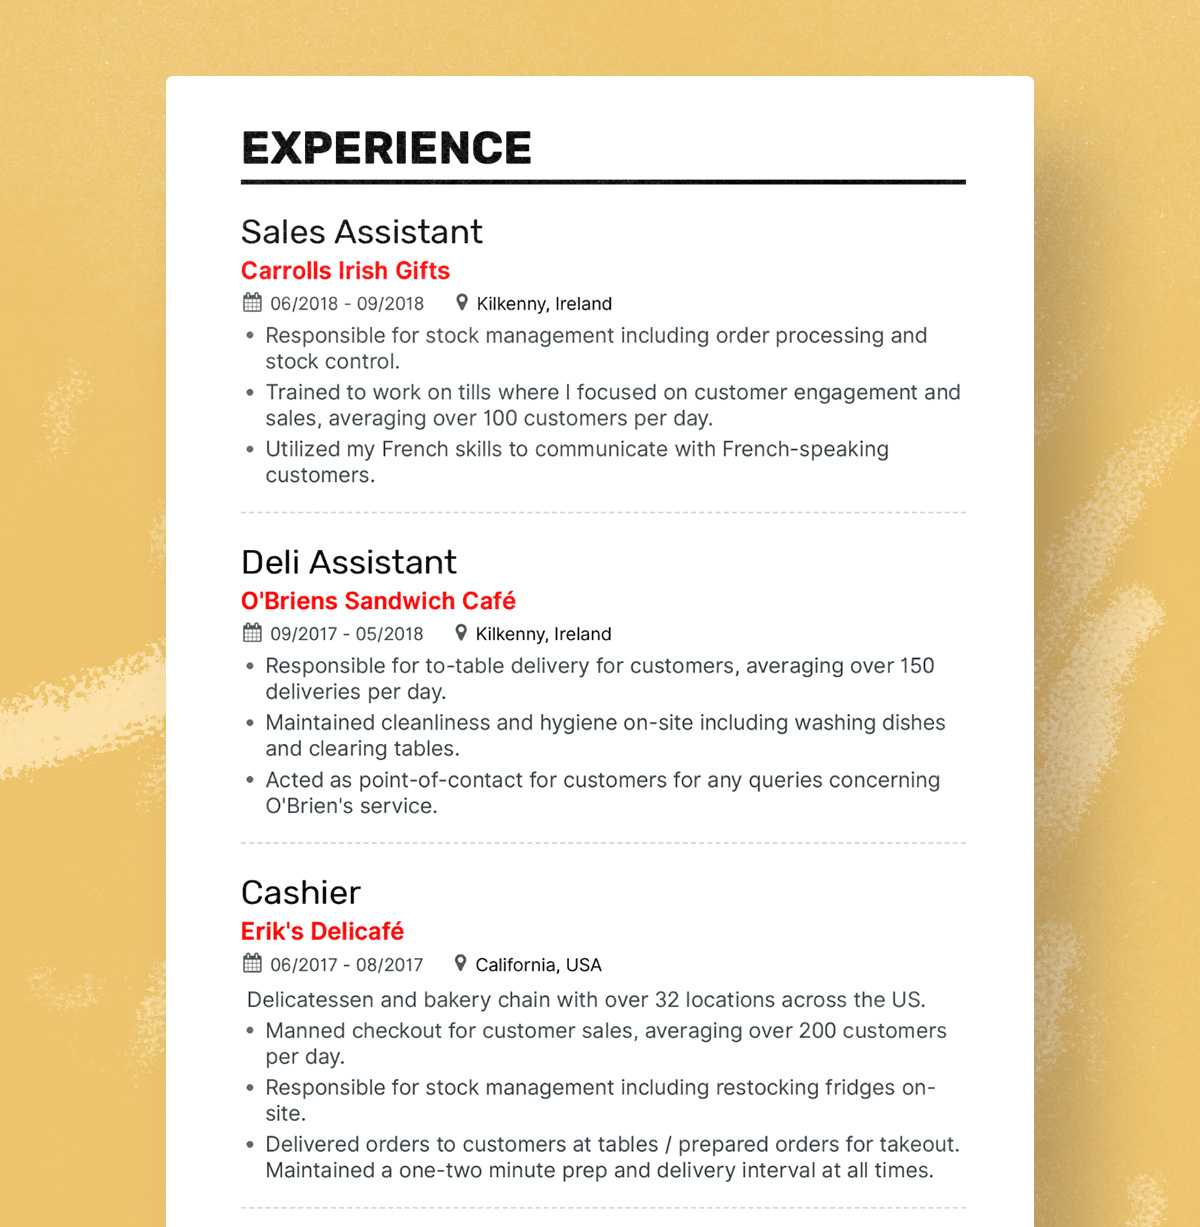 the best fresher resume formats and samples example of for fresh graduate hannah Resume Example Of Best Resume For Fresh Graduate